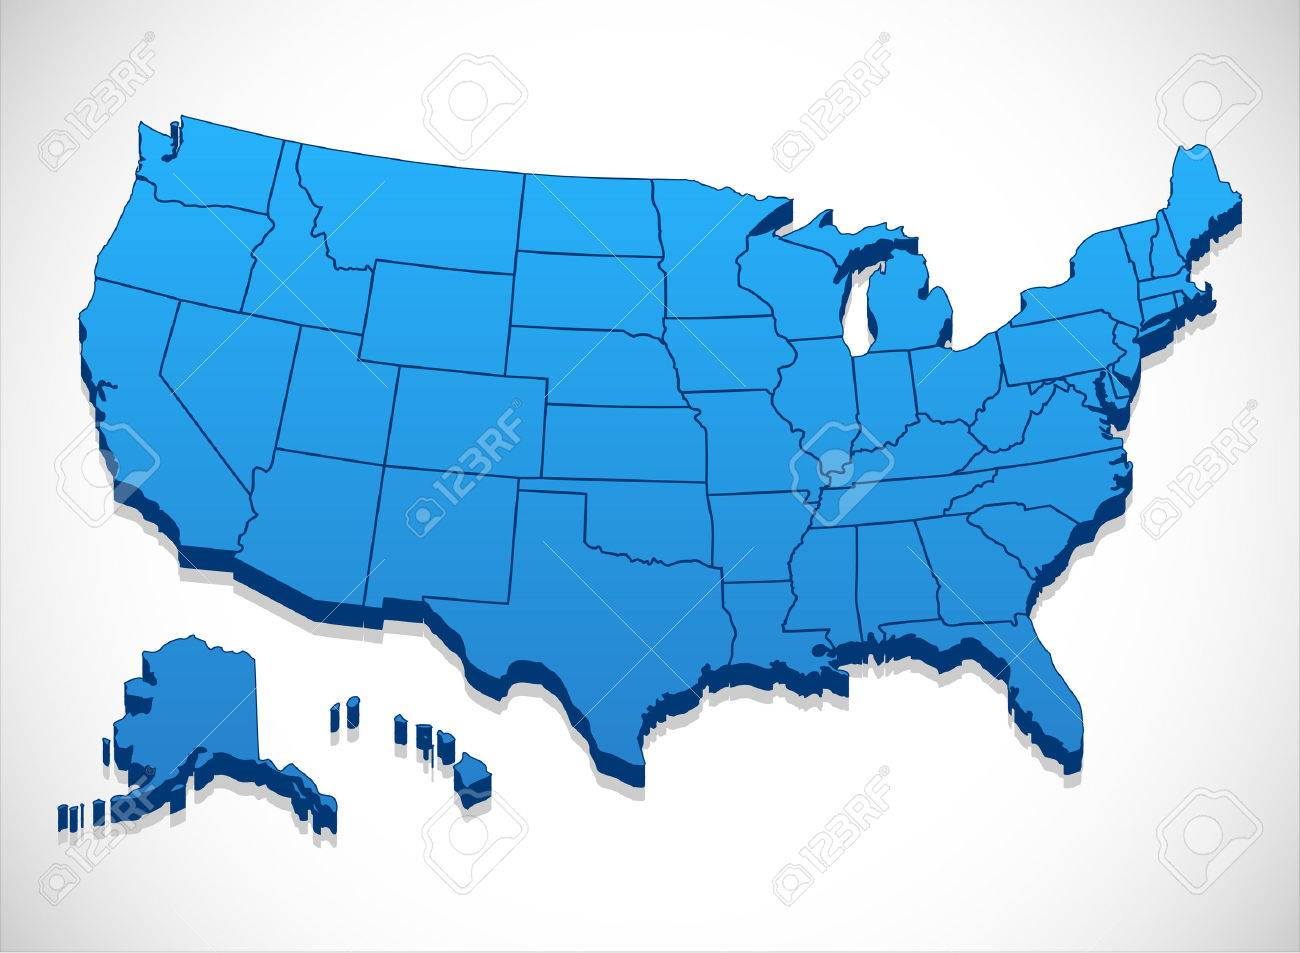 United States of America Map - 3D illustration of United States map. - 50145367